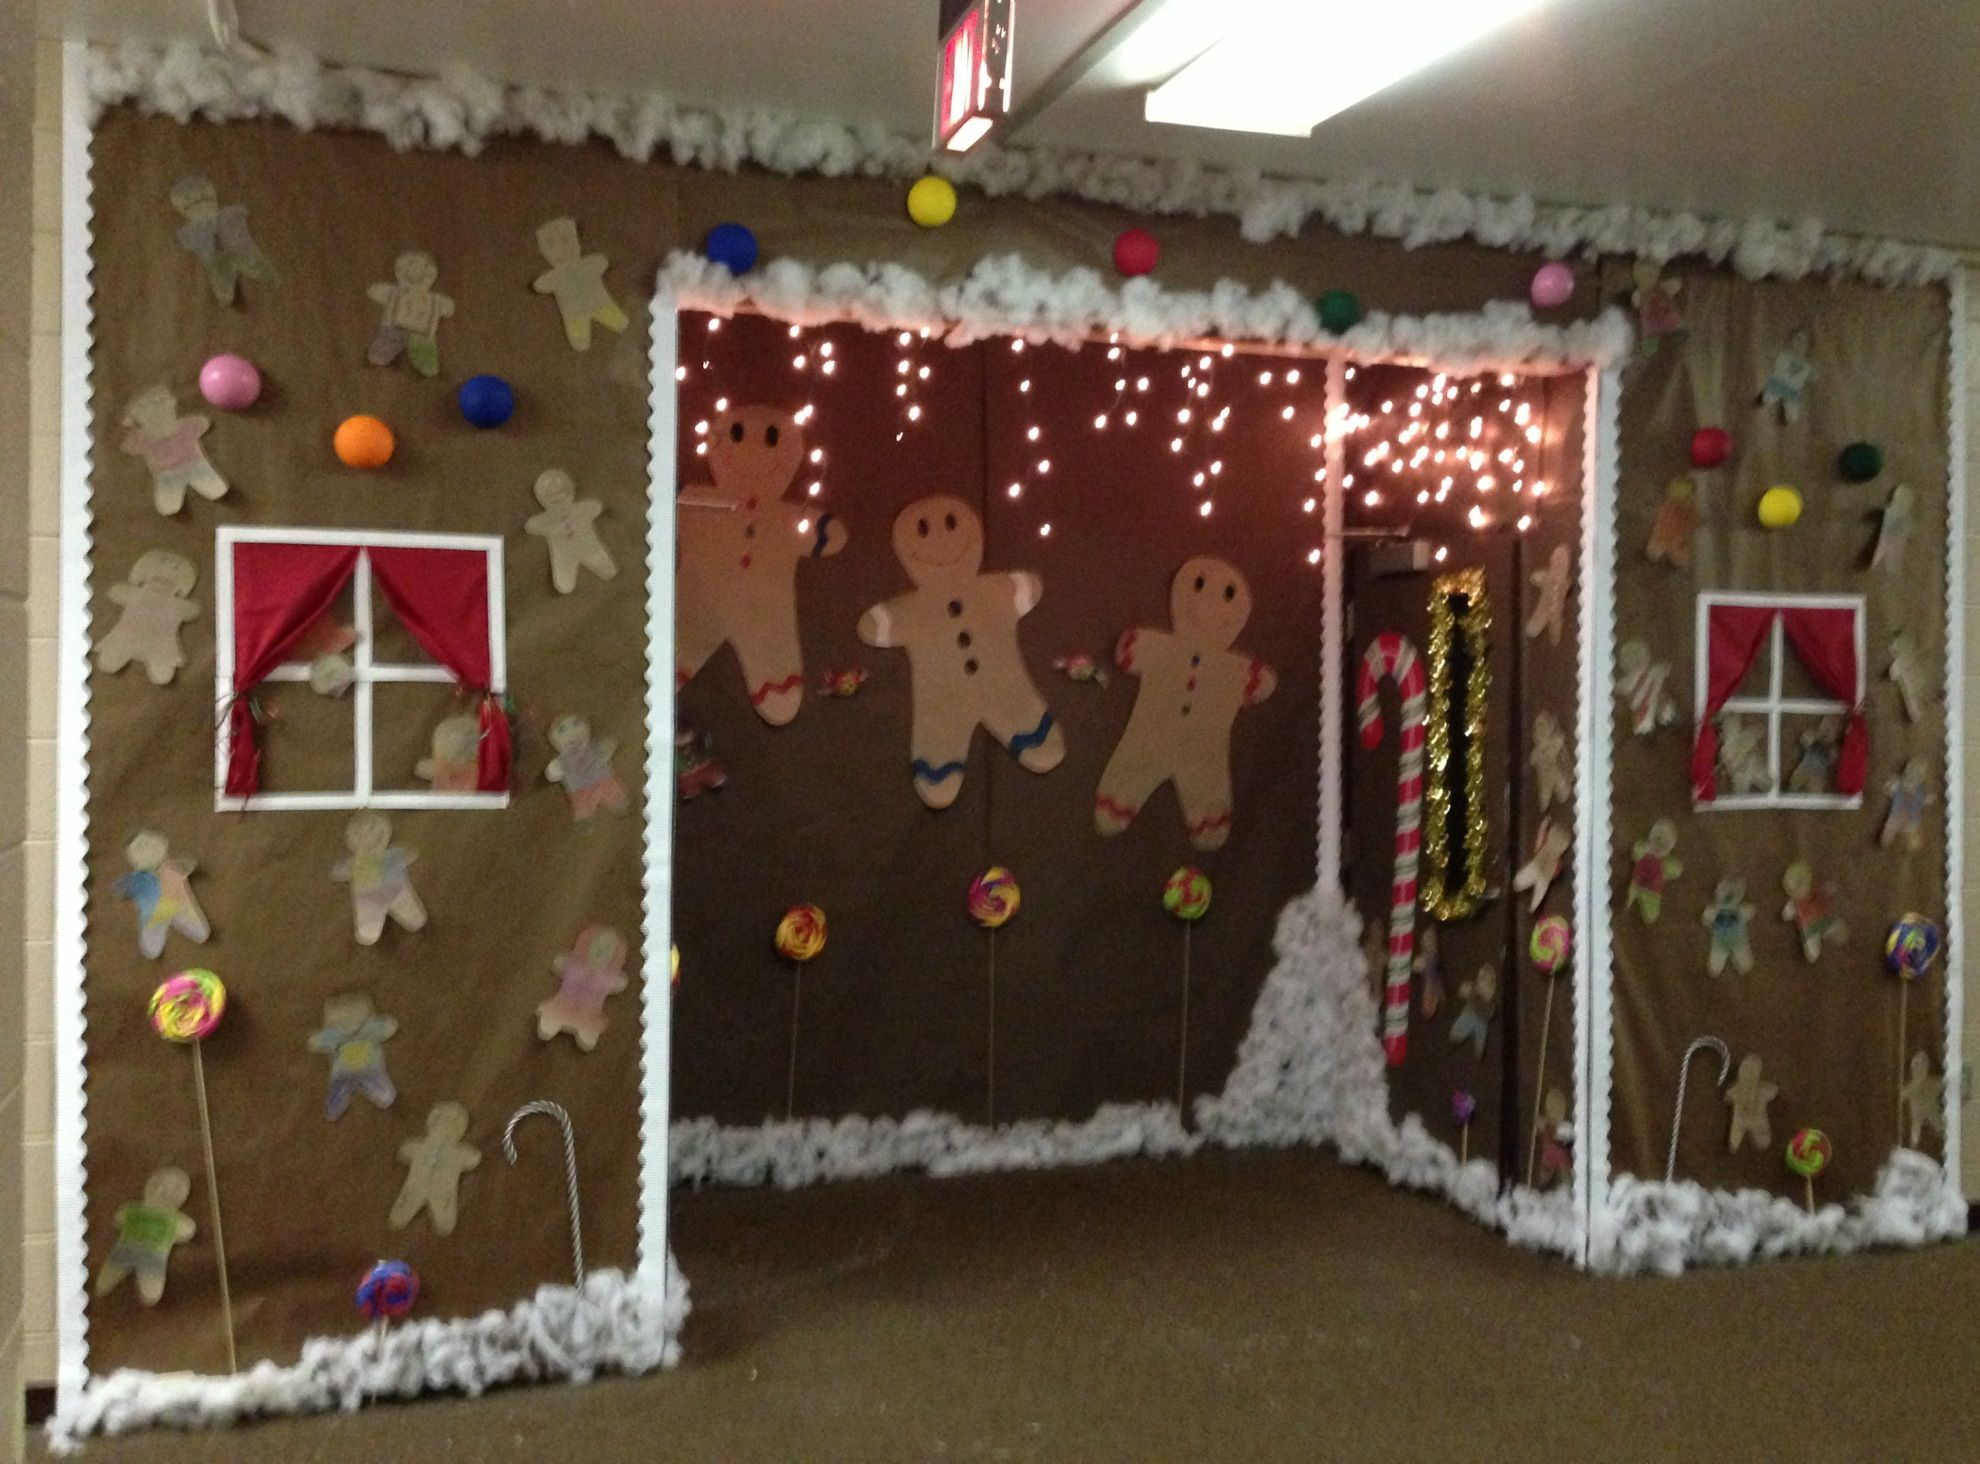 Gingerbread house for decorate your door contest.